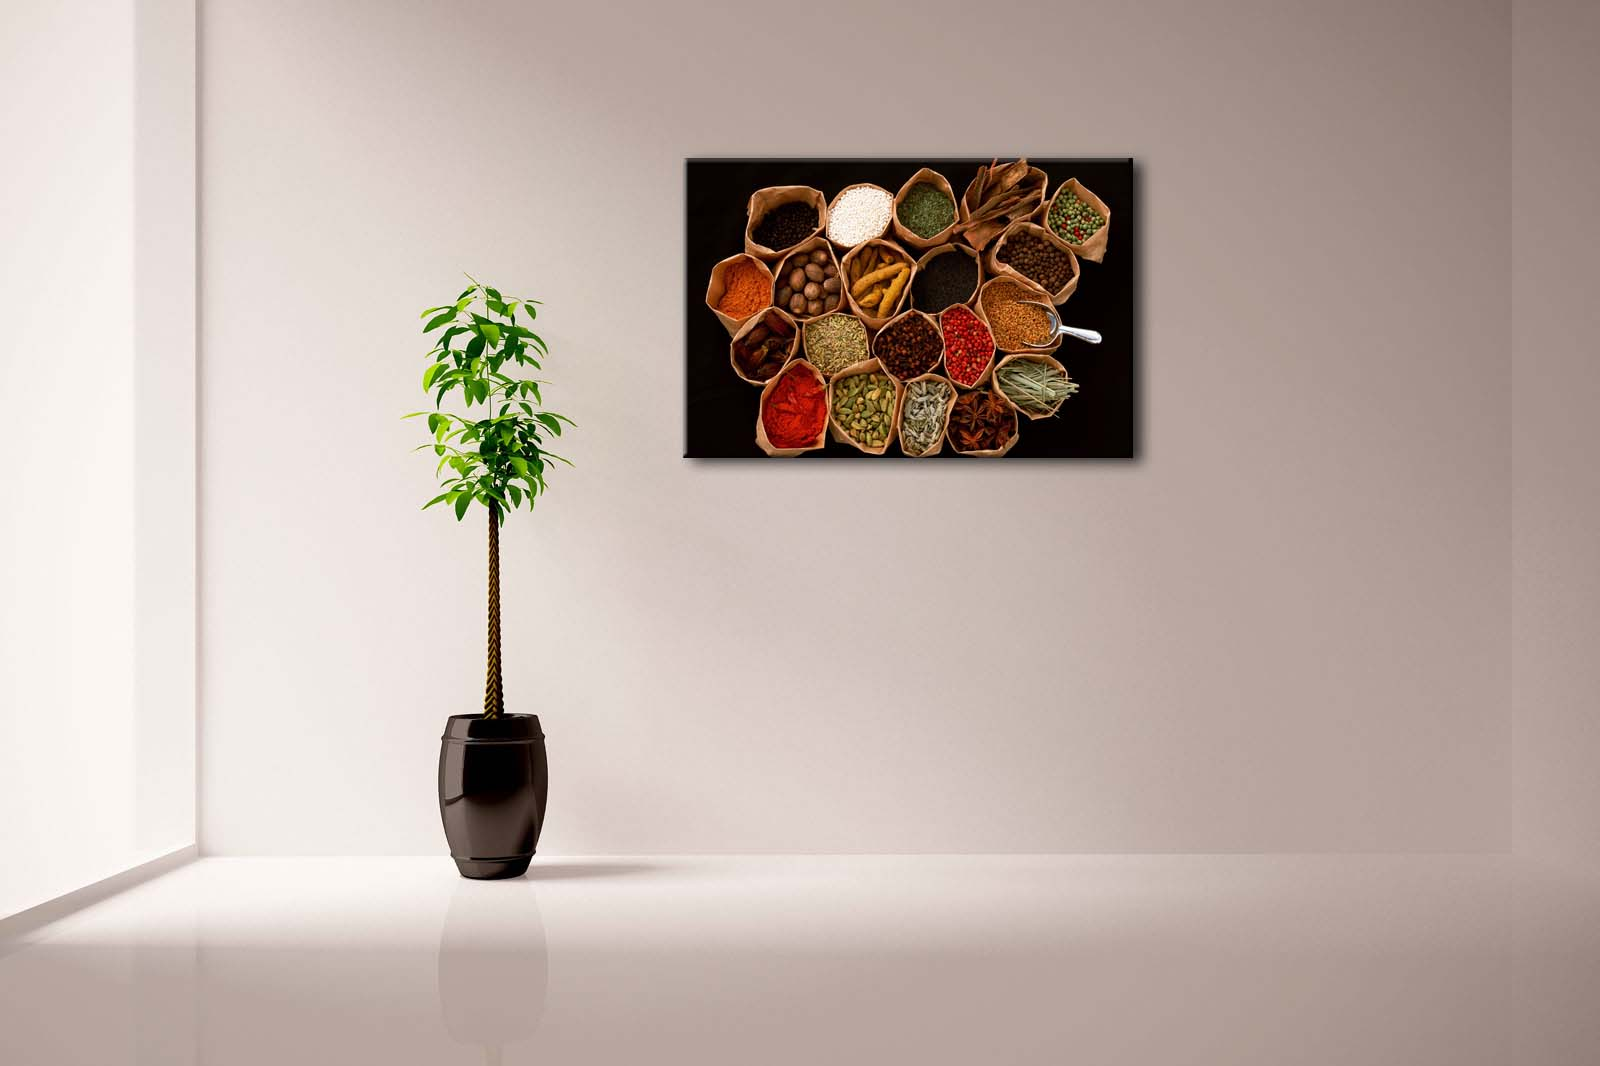 Herbs & Spices Framed Canvas Painting - Canvas Paintings Under $100